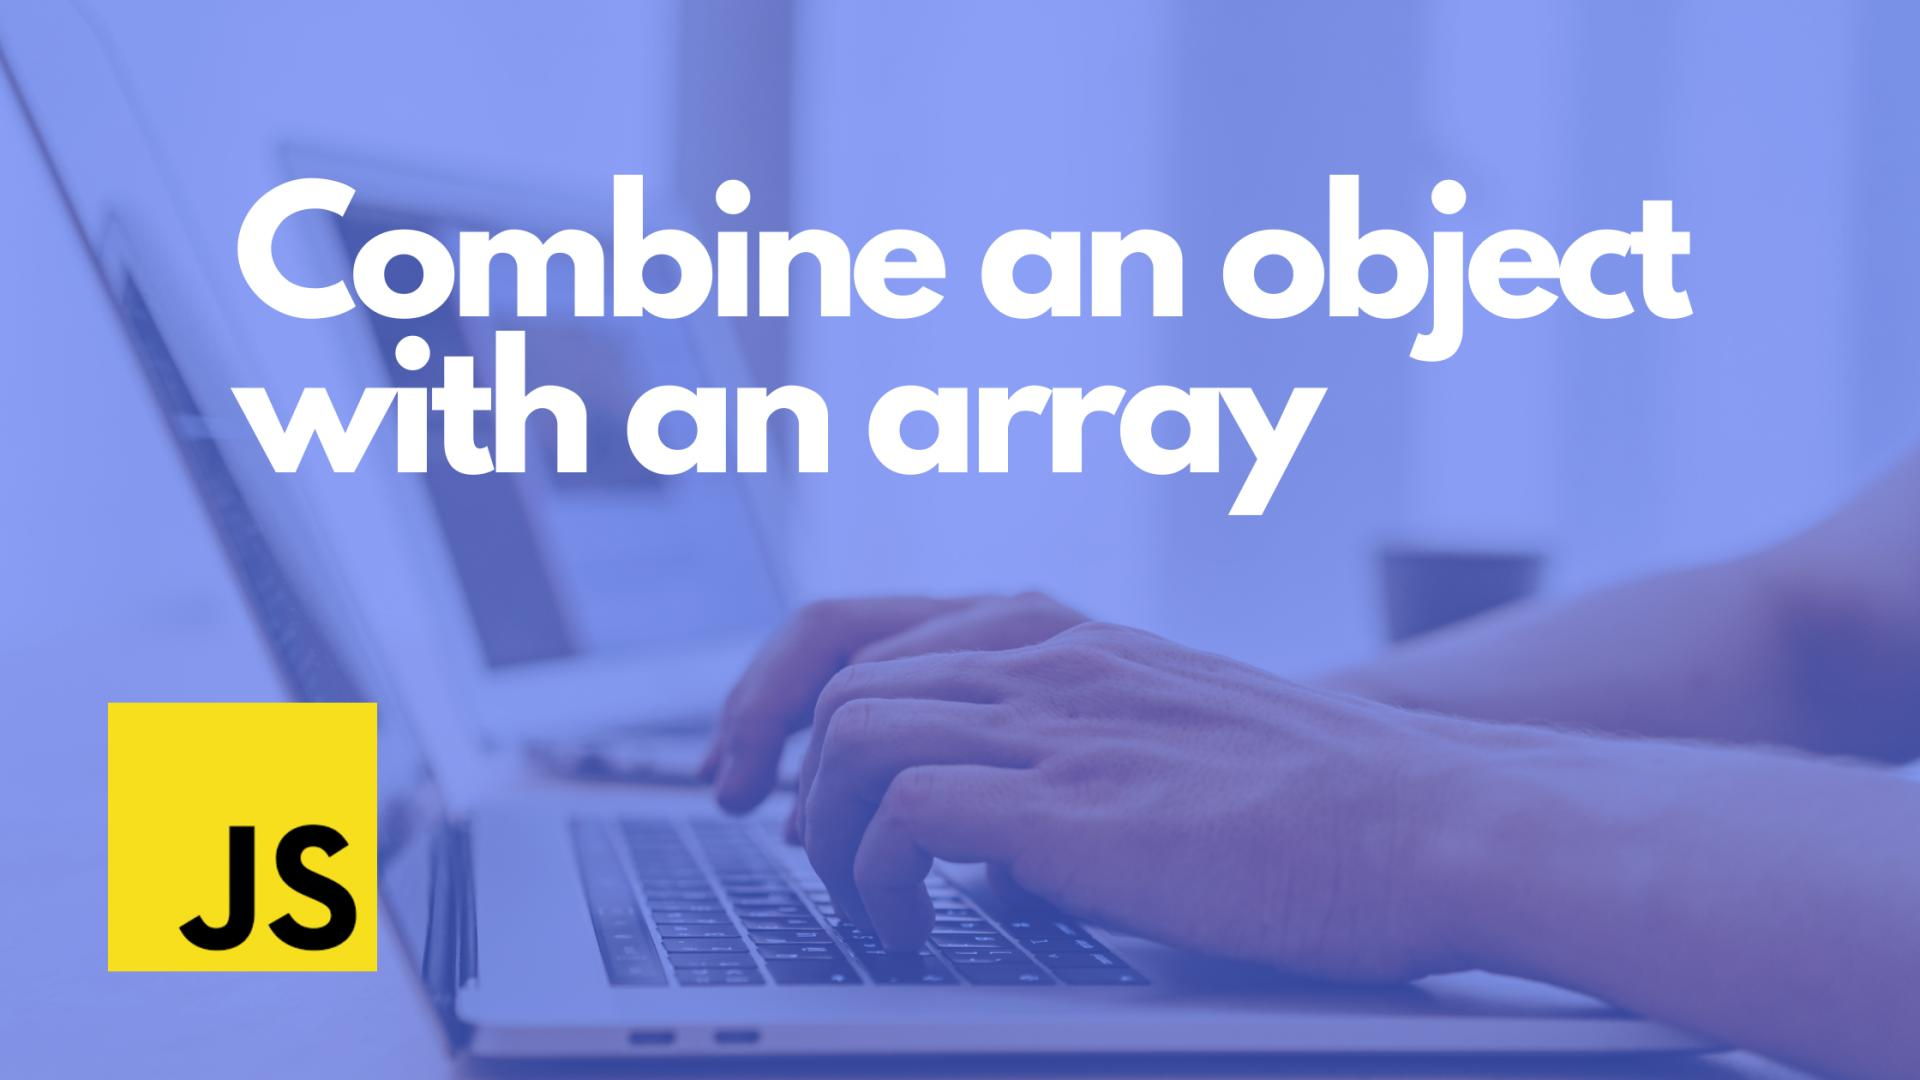 Combine an object with an array